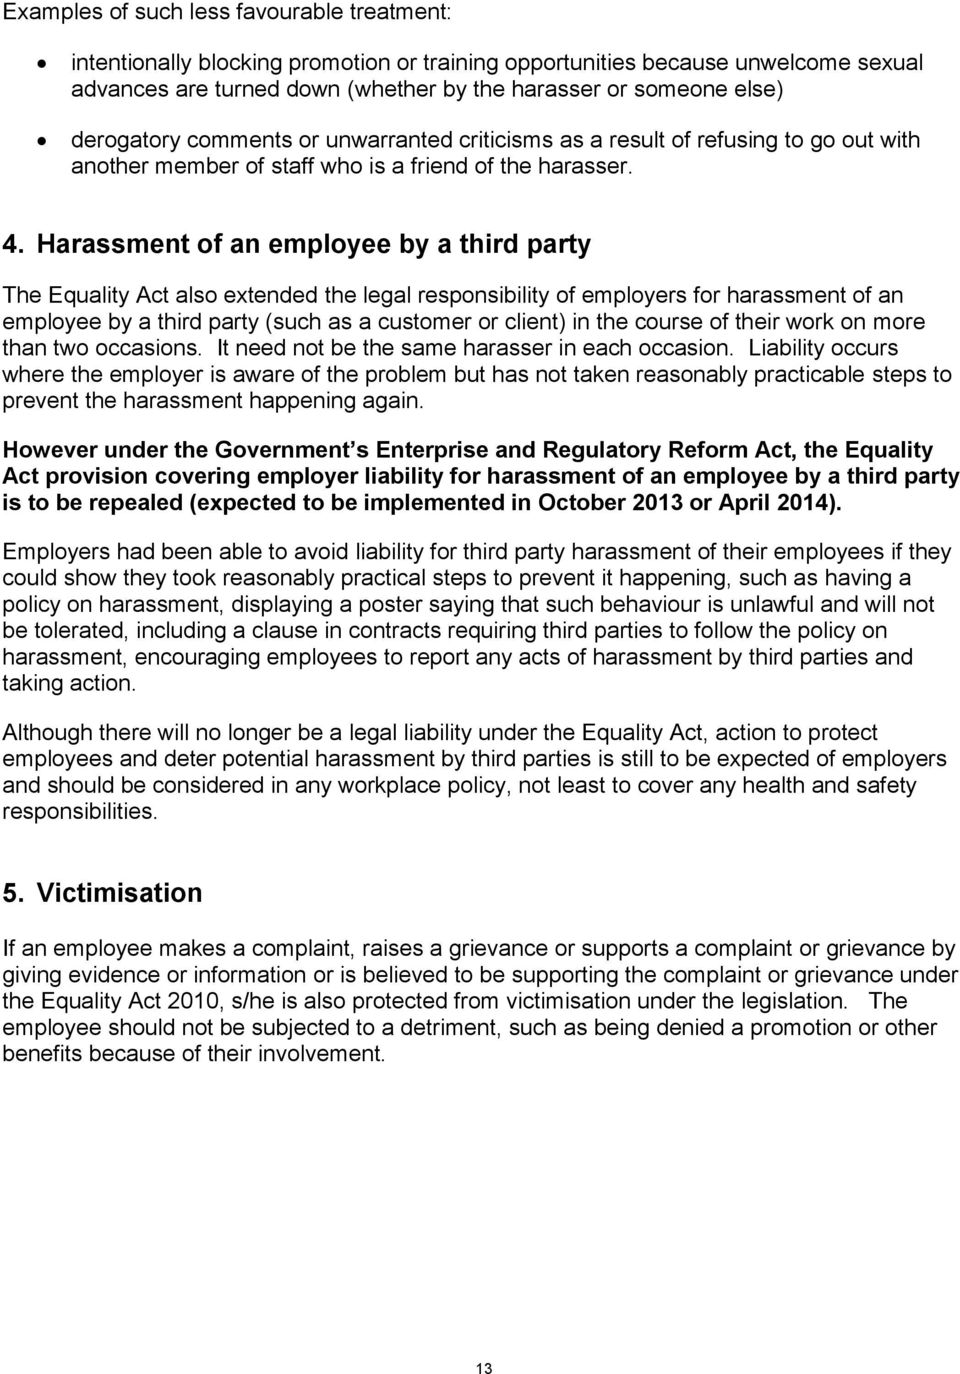 Harassment of an employee by a third party The Equality Act also extended the legal responsibility of employers for harassment of an employee by a third party (such as a customer or client) in the